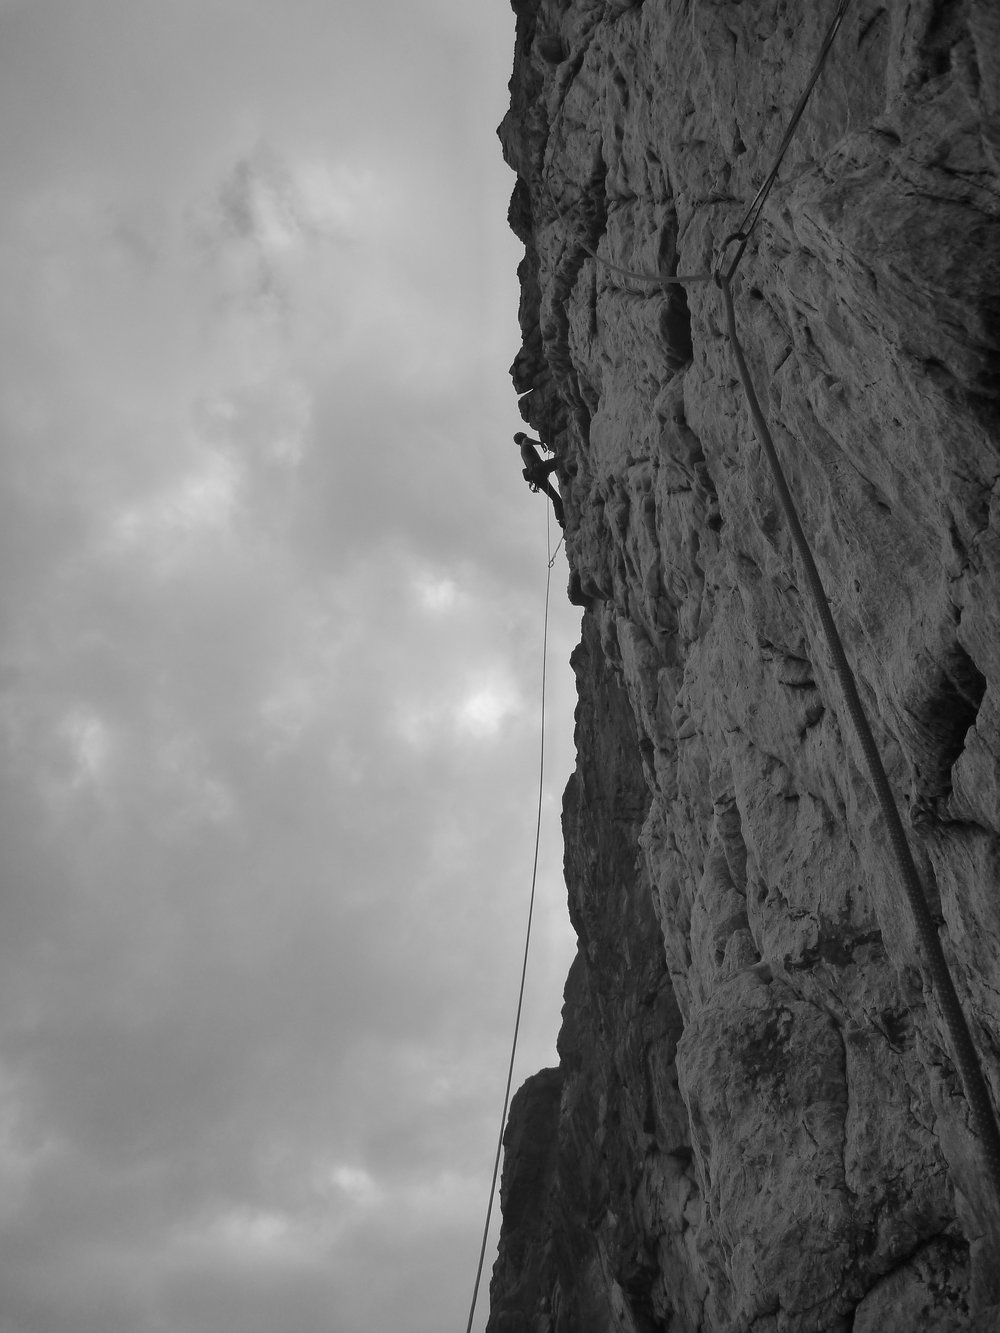 rat race (e3 5c), gogarth. north wales. Photo: adam russell